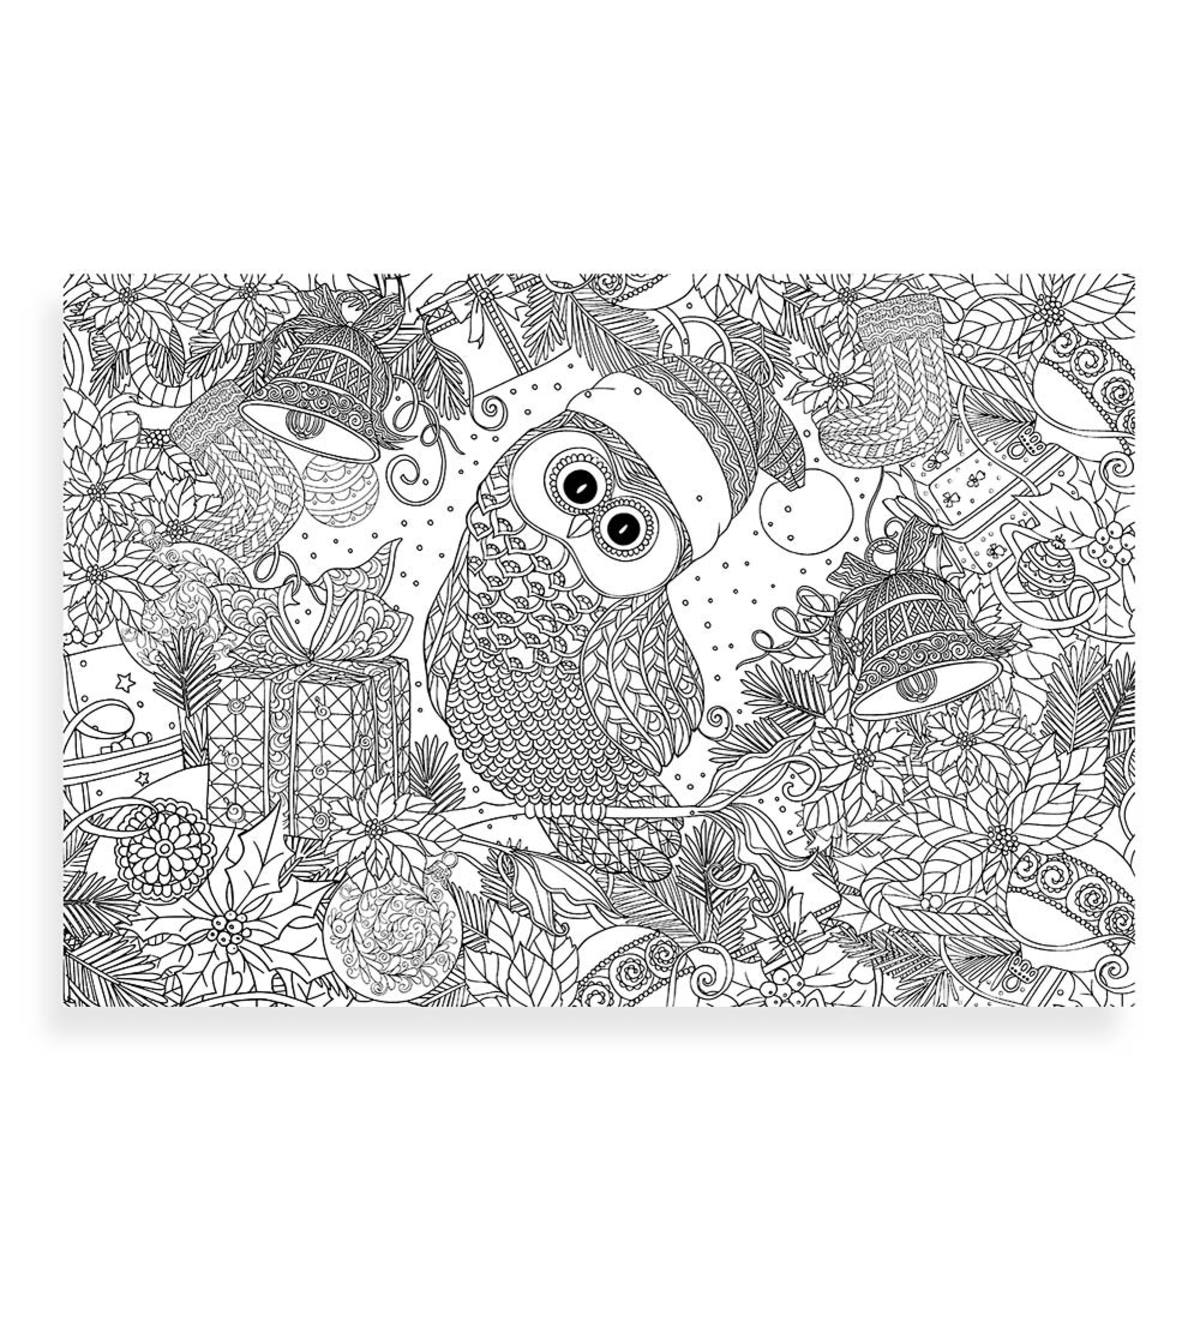 Kids' 300-Piece Holiday Color-Me Jigsaw Puzzle - Holly Jolly Owl